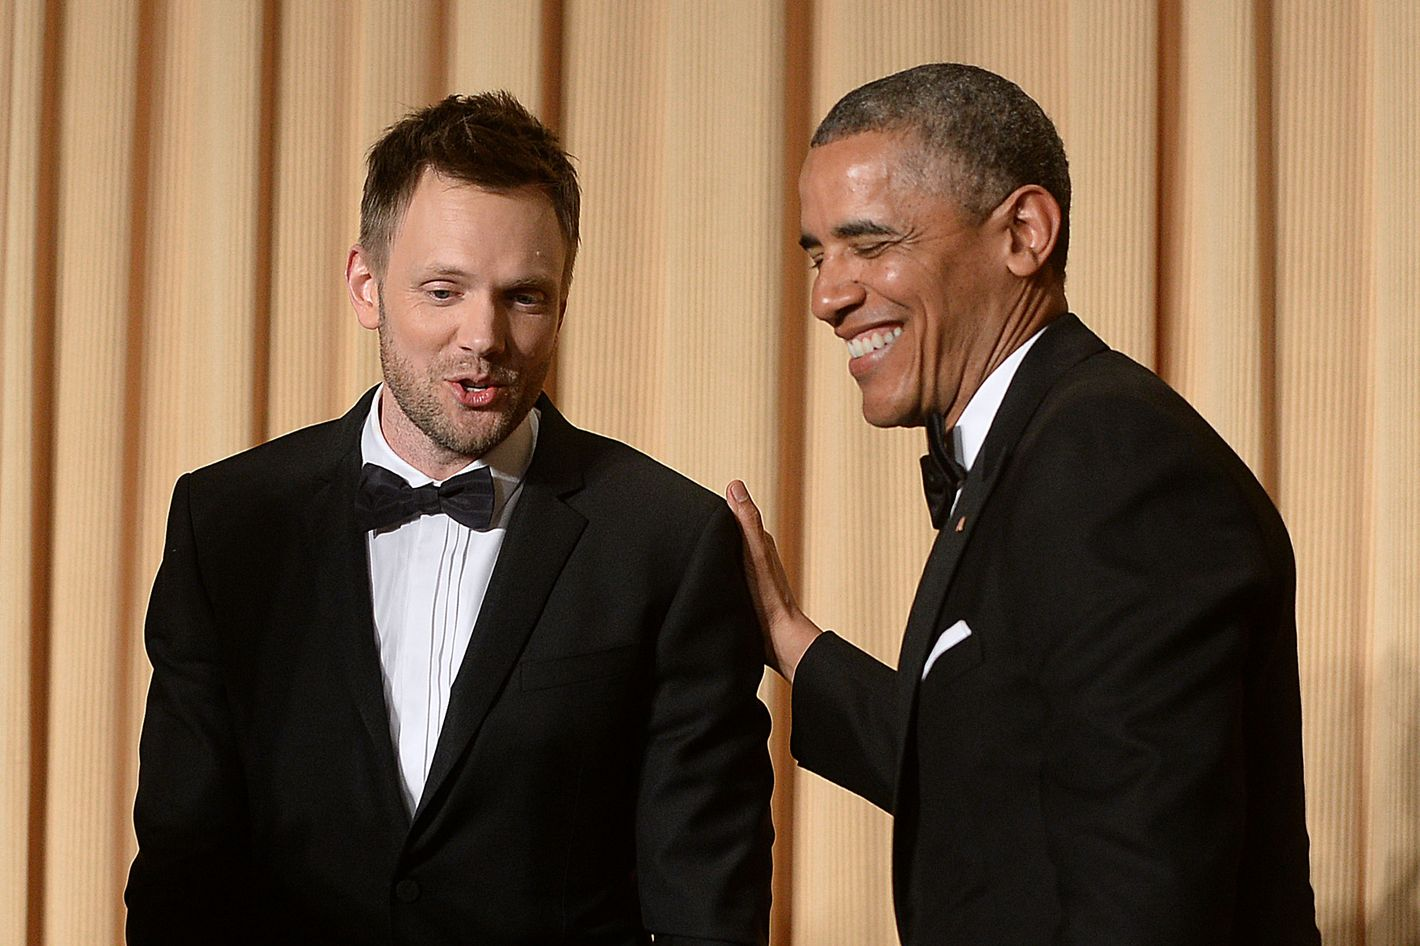 WASHINGTON, DC - MAY 3:  US President Barack Obama and comedian Joel McHale share a laugh at the annual White House Correspondent's Association Gala at the Washington Hilton hotel May 3, 2014 in Washington, D.C. The dinner is an annual event attended by journalists, politicians and celebrities. (Photo by Olivier Douliery-Pool/Getty Images)